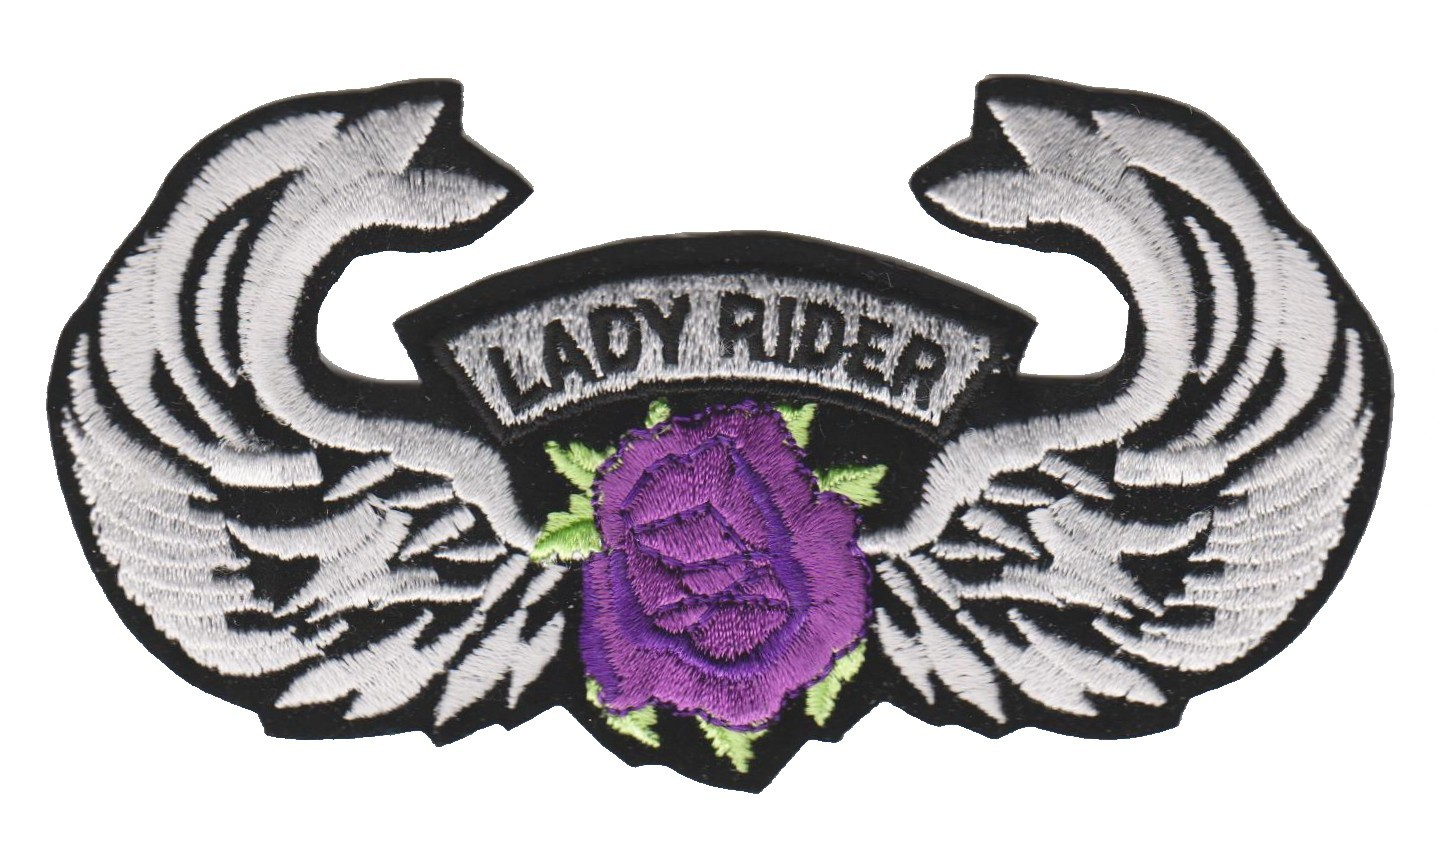 "Lady Rider Wings Motorcycle Patch 4 1/2 "" x 2 1/2 ""FREE SHIPPING - Product Image"